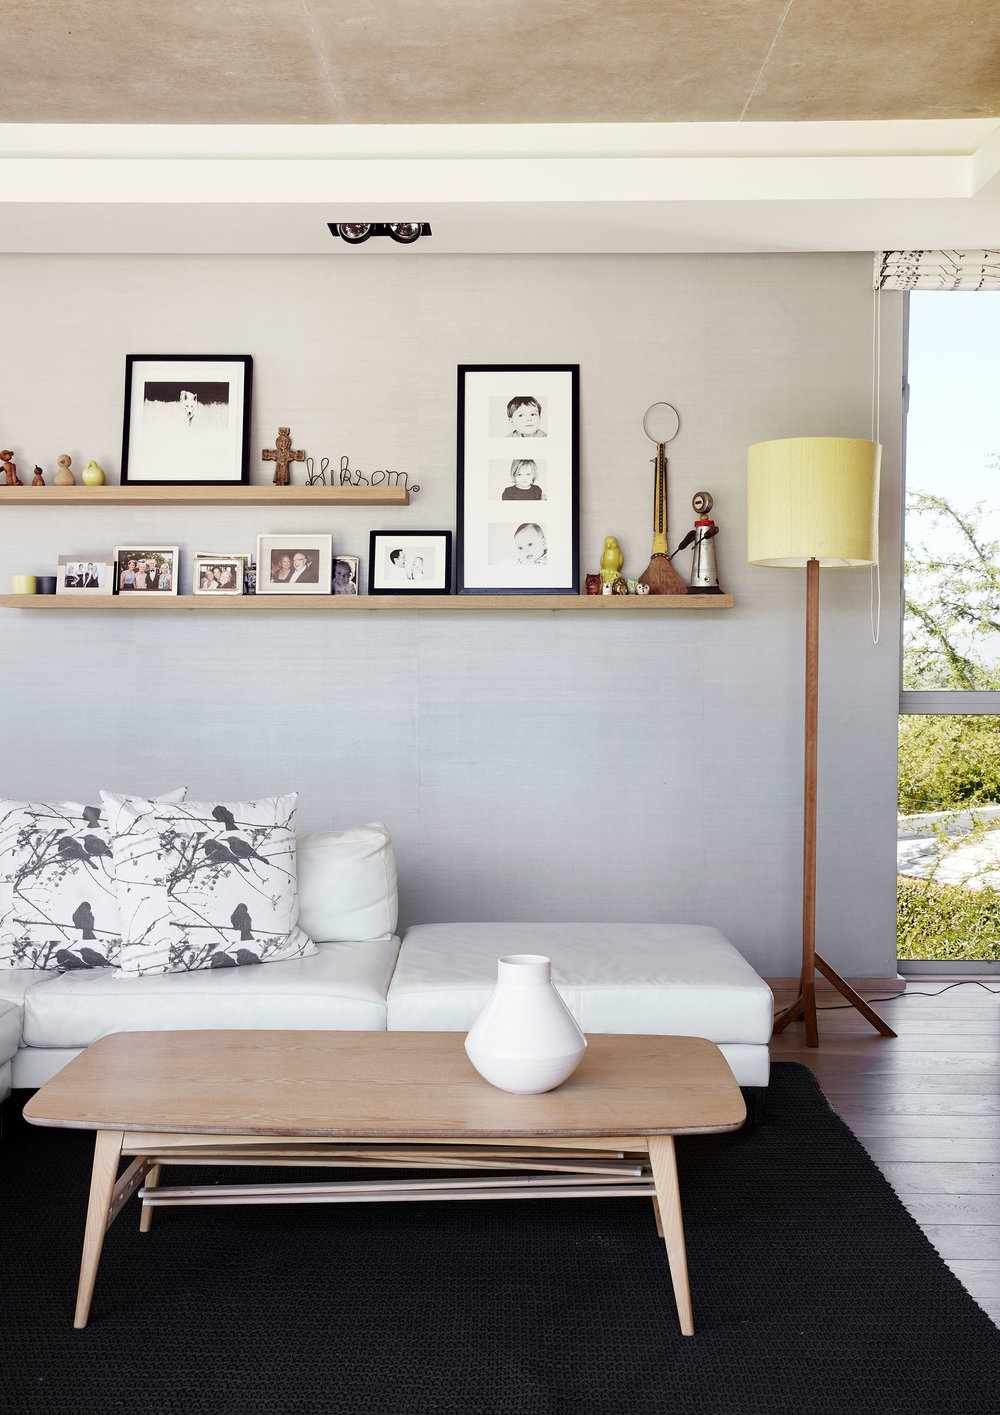 The white leather sofa from Klooftique was purchased before the house was built on the advice of Jan-Heyn‭, ‬with an eye to how it‭ ‬might suit the house when complete‭. ‬The vintage coffee table is from Space For Life‭. ‬The Scandinavian mid-century wooden toys are design classics‭, ‬and include Kristian Vedel‮!&‬s family of birds and Kay Bojesen‮!&‬s iconic monkey‭, ‬which Matt‮!&‬s father has had since he was a child‭.‬